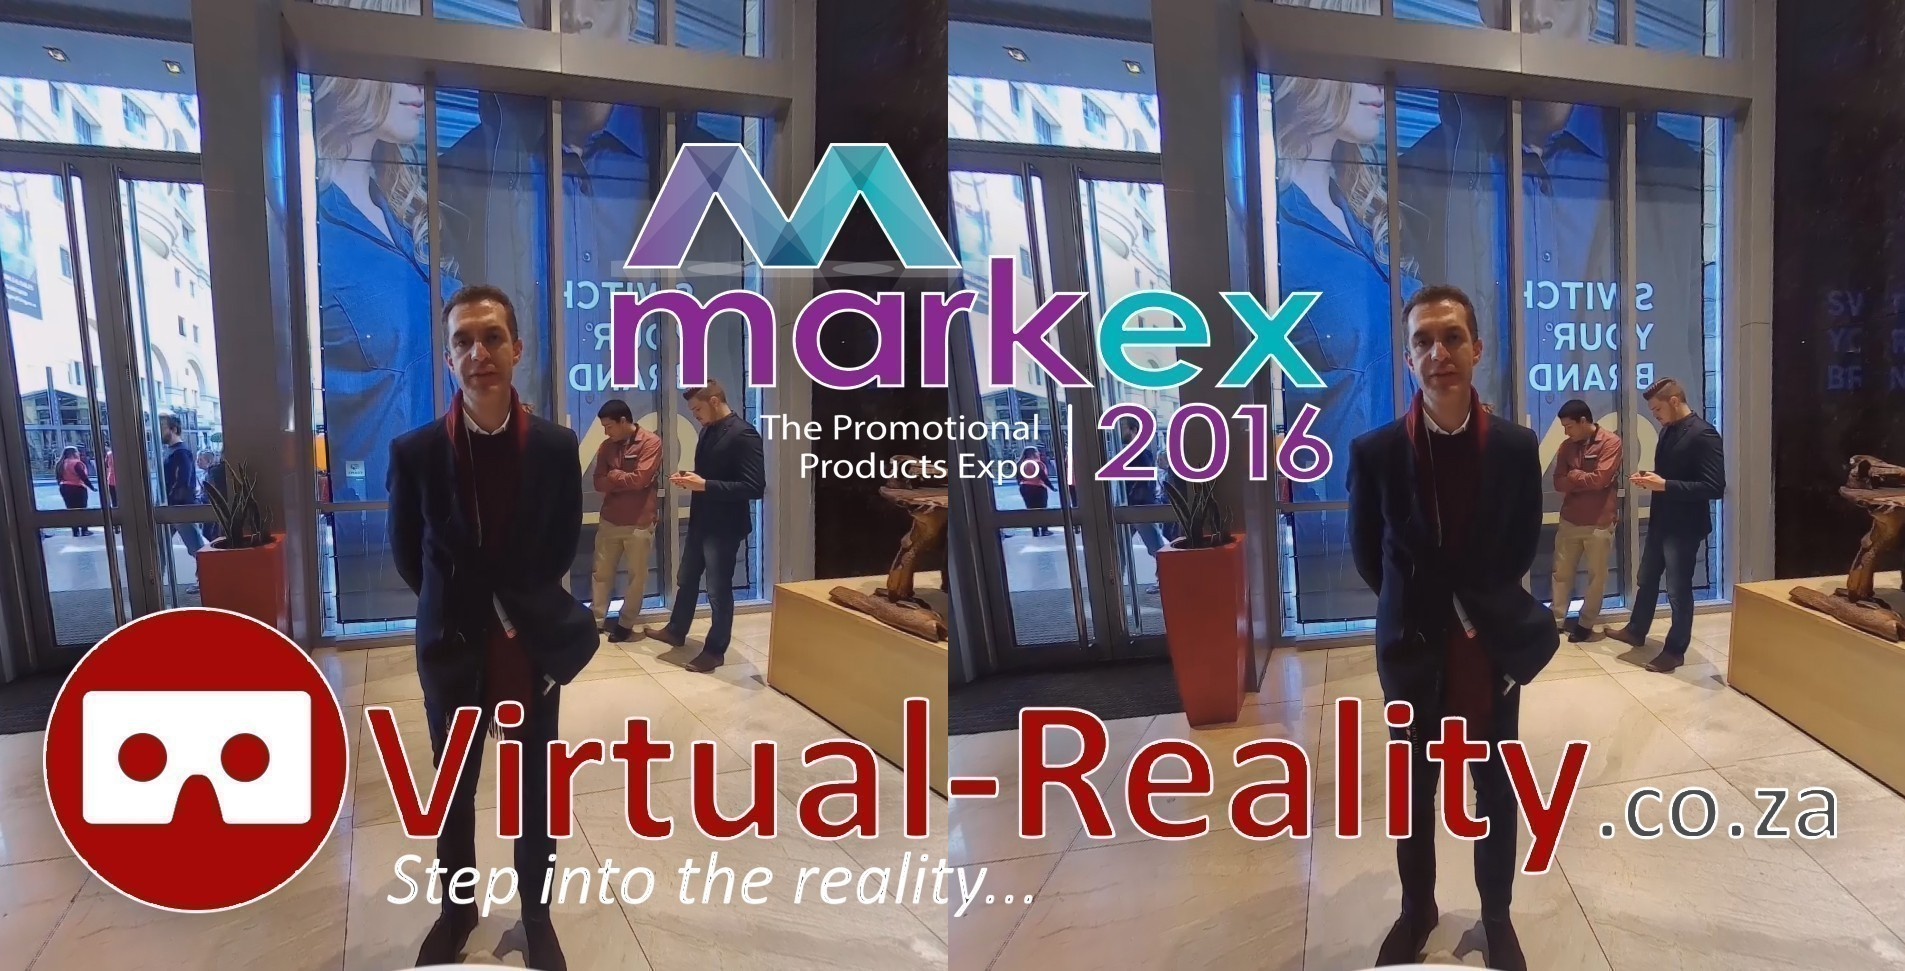 markex-virtual-reality